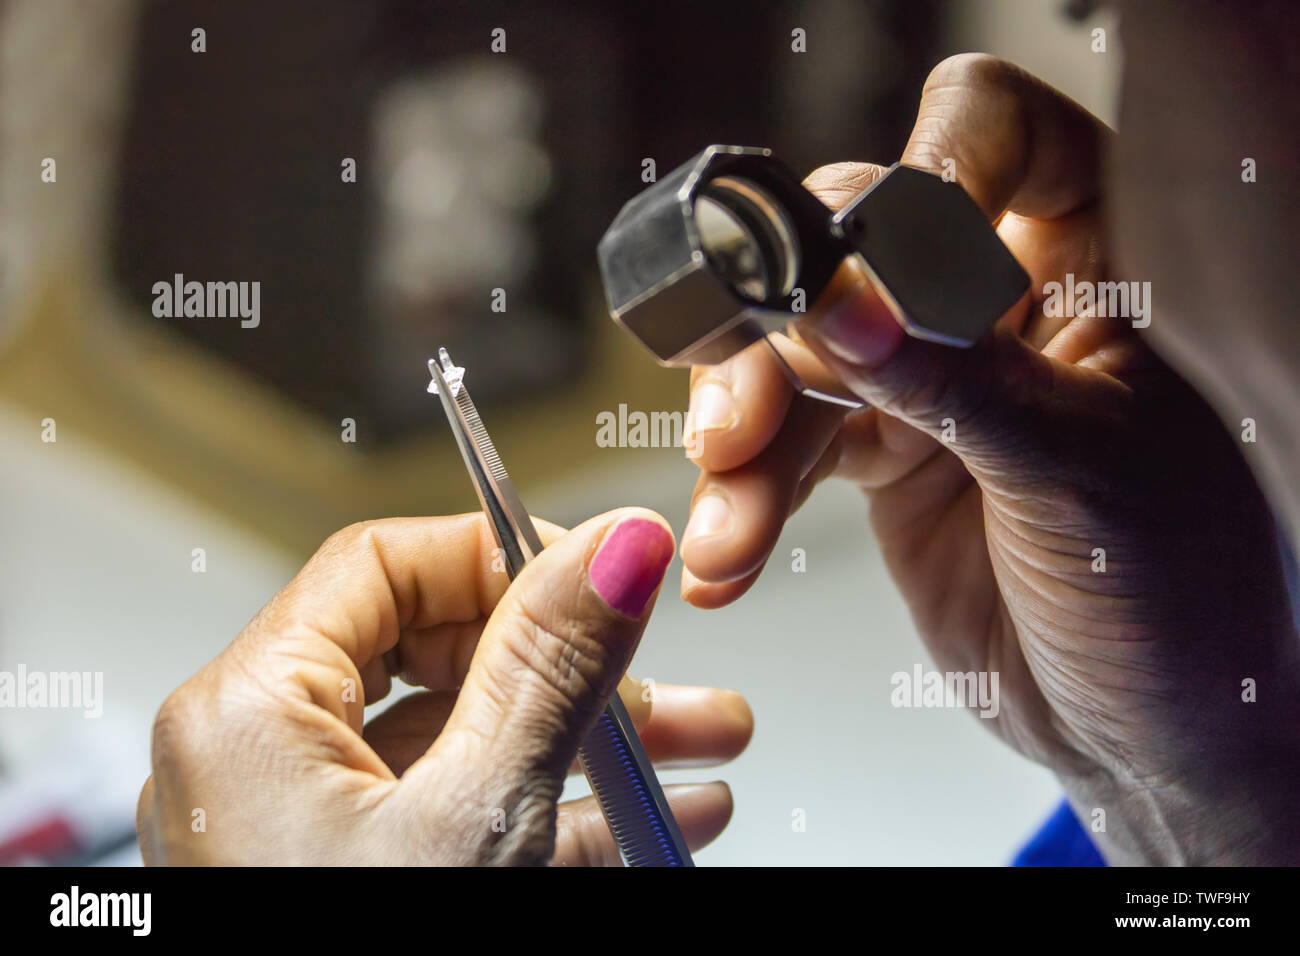 Botswana, african woman worker checking quality of a diamond. - Stock Image